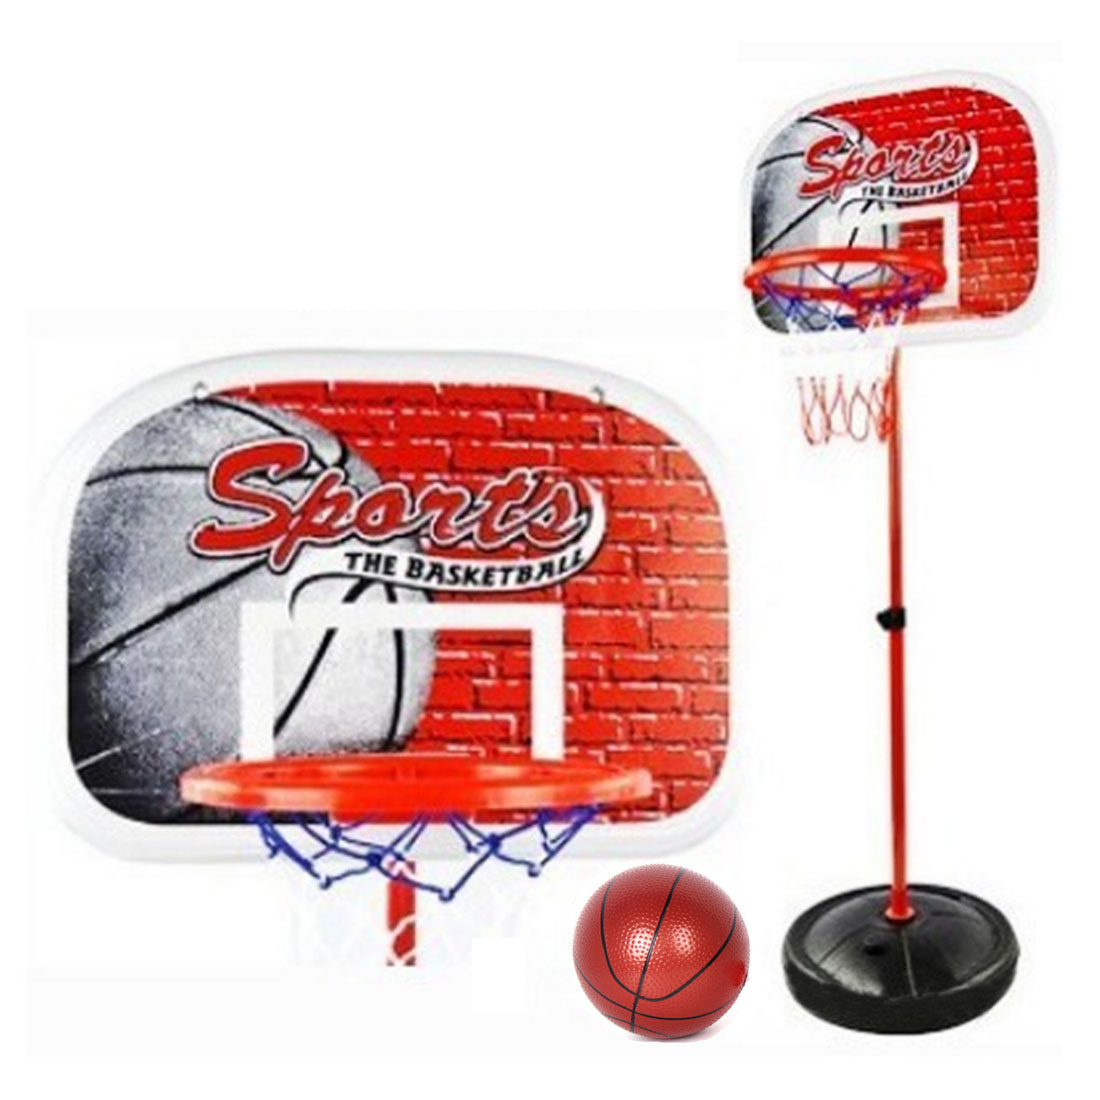 Kids Mini Backboard Basketball Stand with Inflator Basketball Goal Hoop Toy 4-Section Heights Adjustable 20-58inch